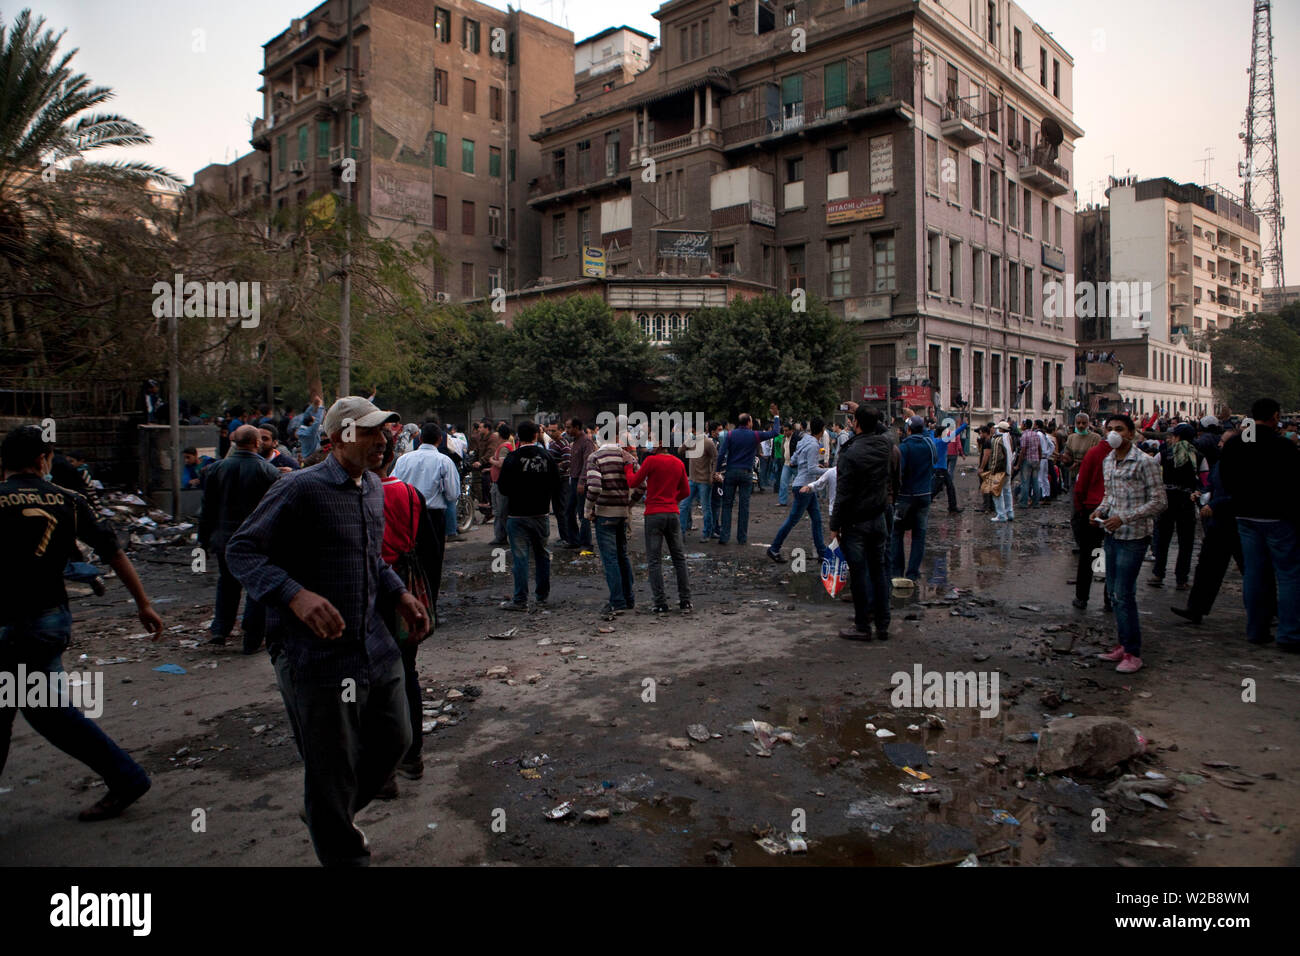 November 23, 2011 – Cairo, Egypt - Protesters gather near Mohamed Mahmoud Street. Street battles raged around the heavily fortified Interior Ministry, near Tahrir square, with police and army troops using tear gas and rubber bullets to keep the protesters from storming the ministry. The clashes  have left at least 38 killed and 2,000 protesters wounded, mostly from gas inhalation or injuries caused by rubber bullets fired by the army and the police. The United Nations strongly condemned what it called the use of excessive force by security forces. The clashes resumed despite a promise by Egypt - Stock Image